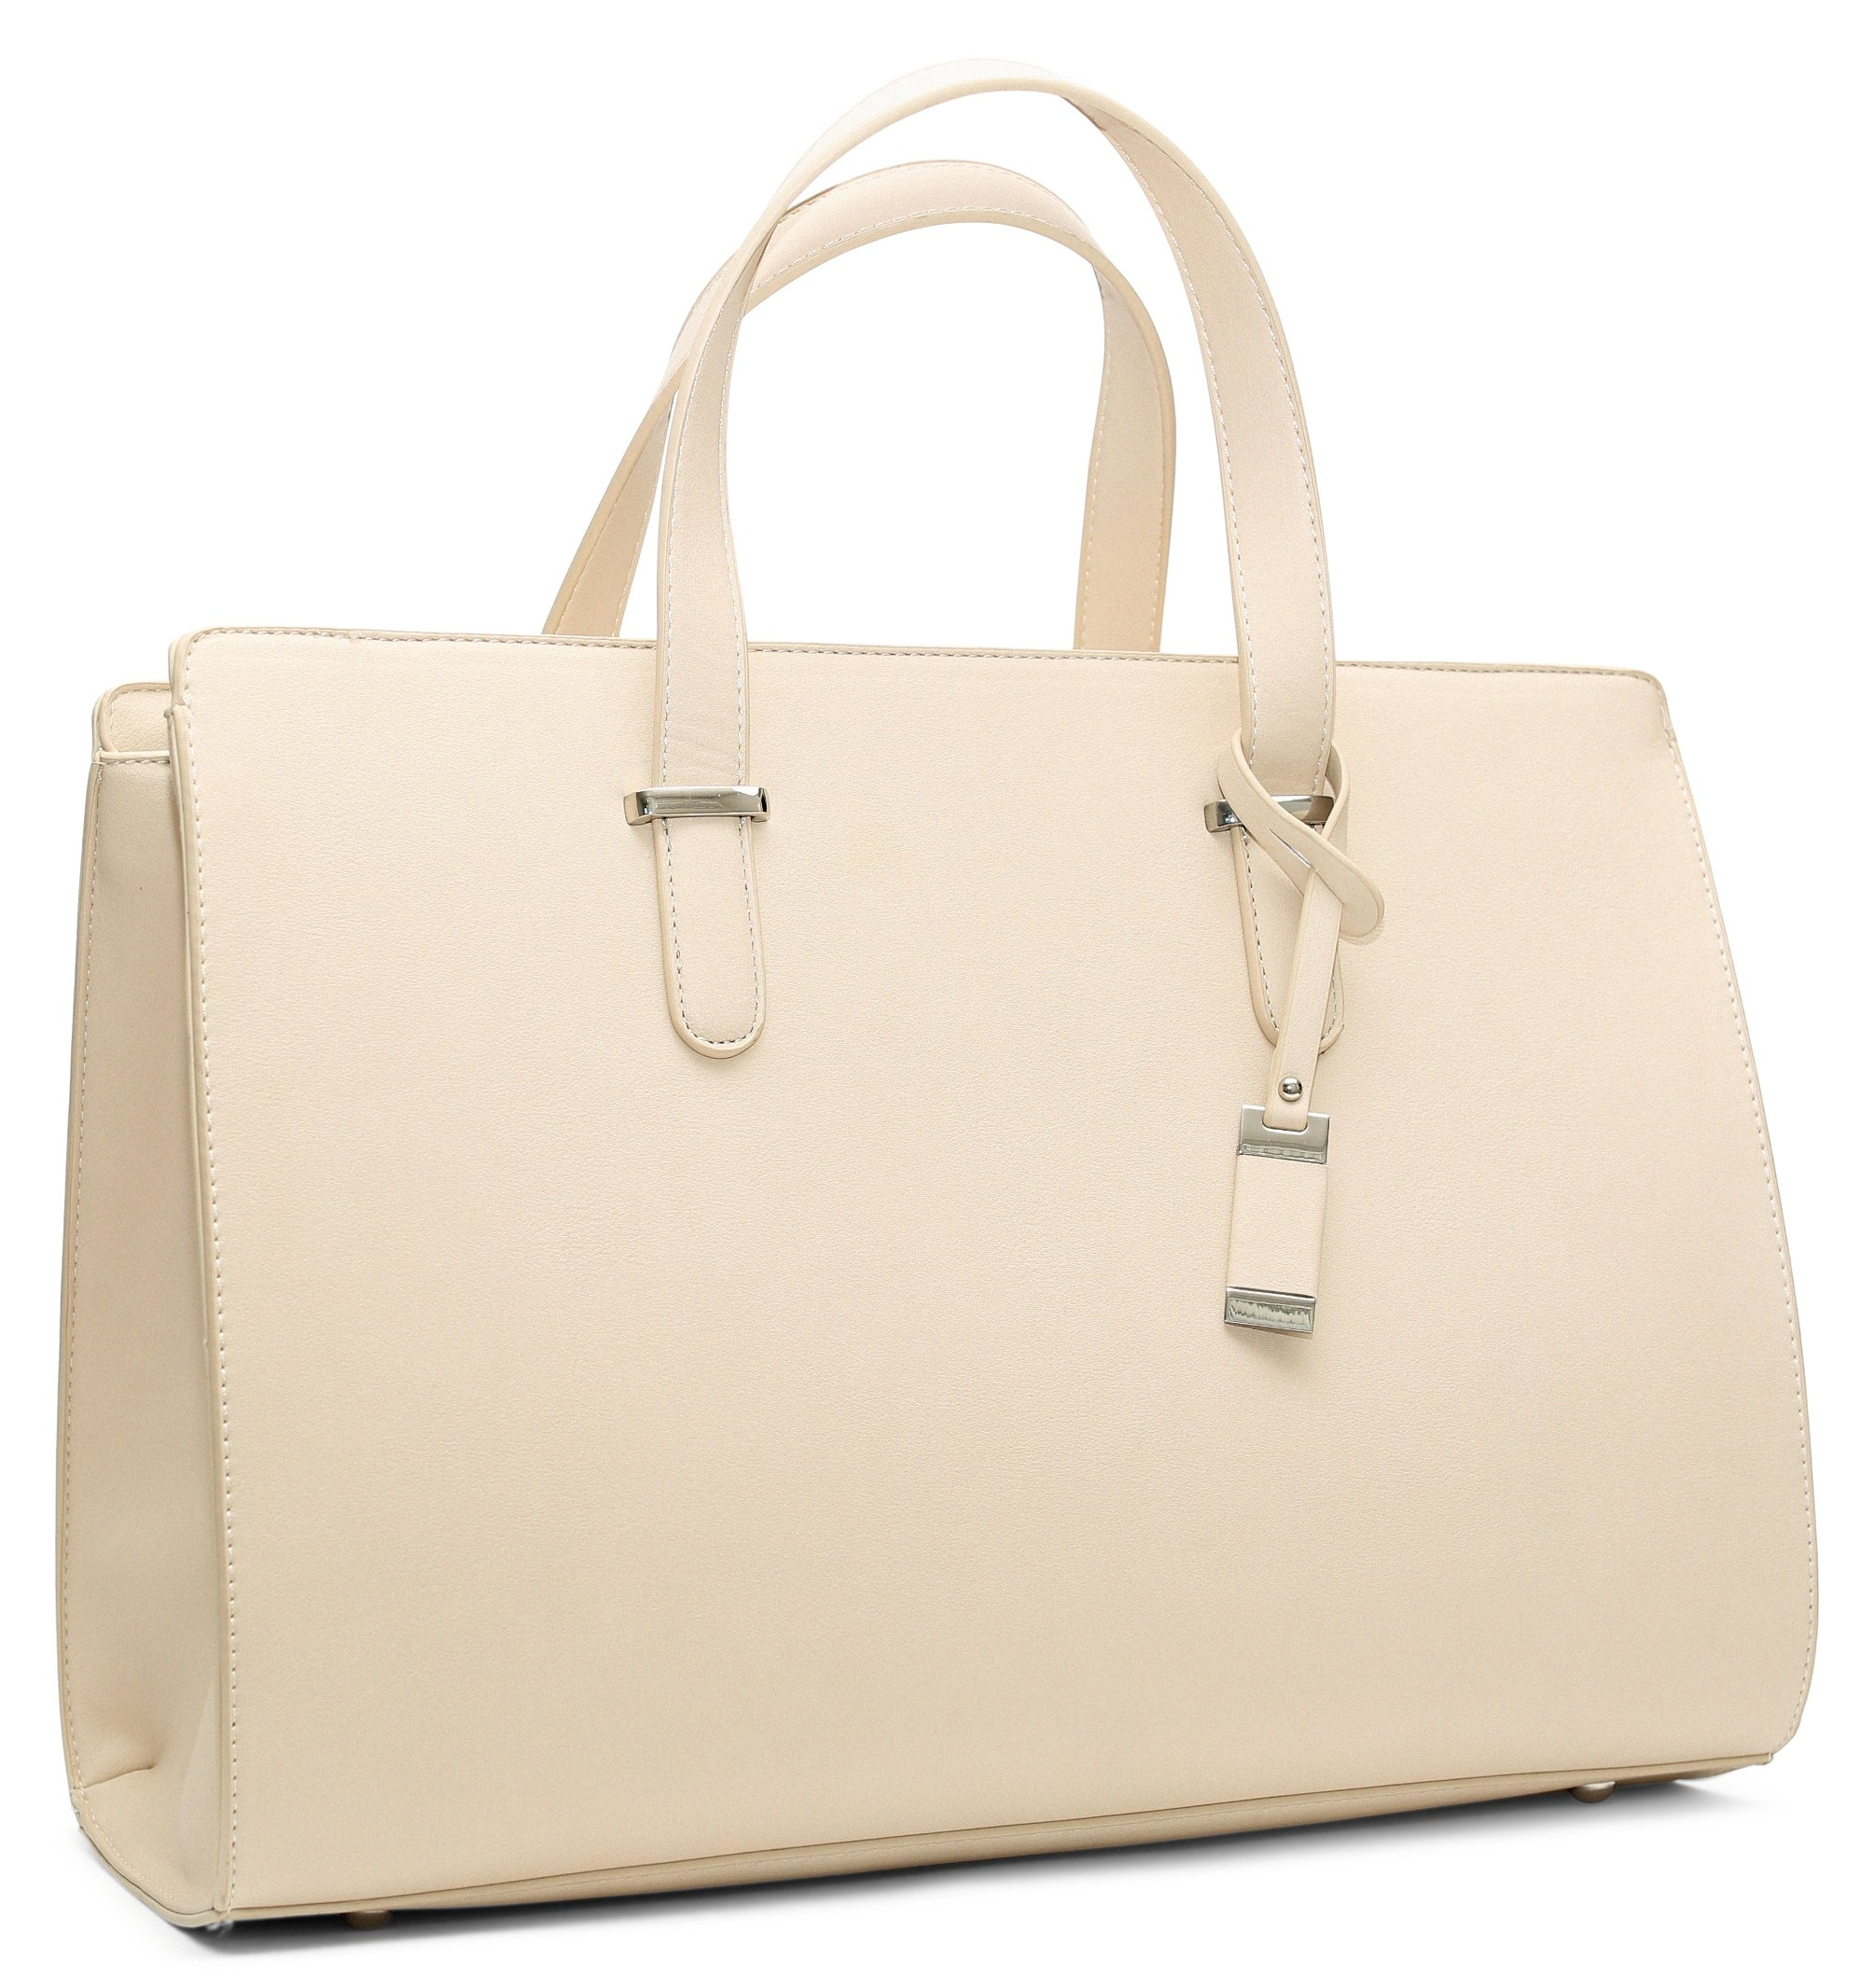 BLON'S Bags Premium Quality Laptop Bag For Women, The Ideal Computer Tote Bag To Keep Your Business Documents, Tablet, Laptop & Notebook Safe, Unique & Practical Laptop Accessorie (Beige) by BLON'S Family